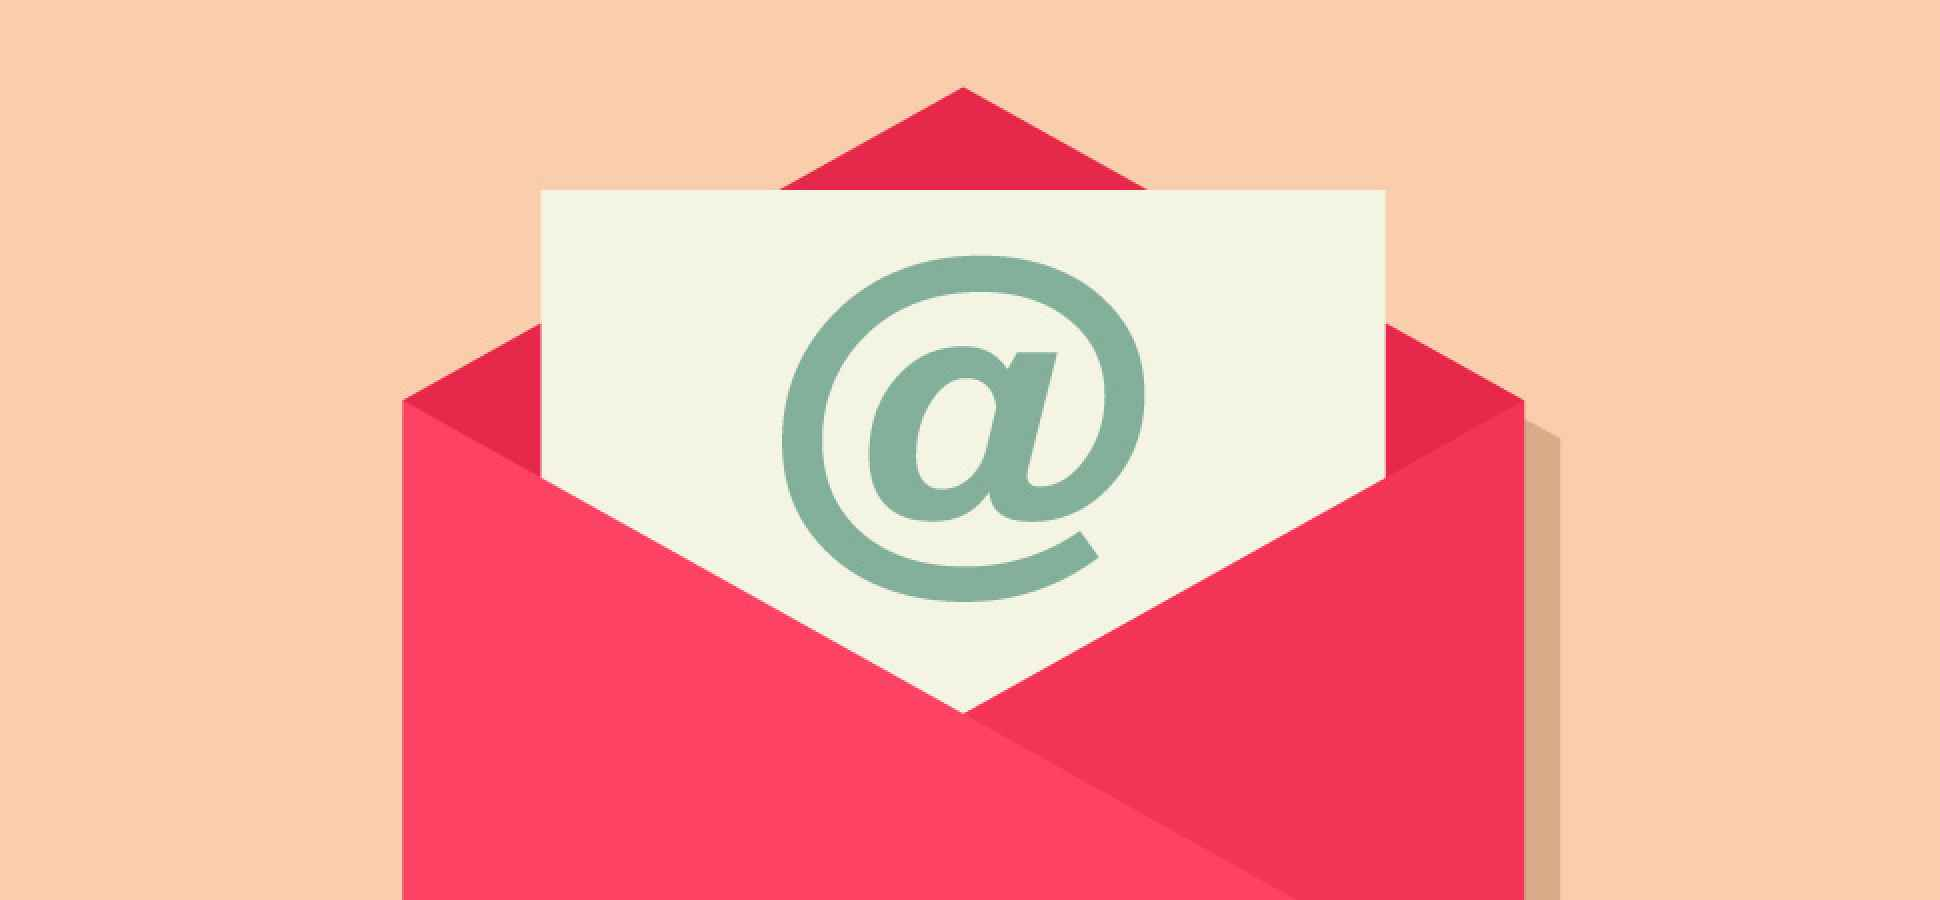 Email Marketing: How to Write Subject Lines That Get Clicks